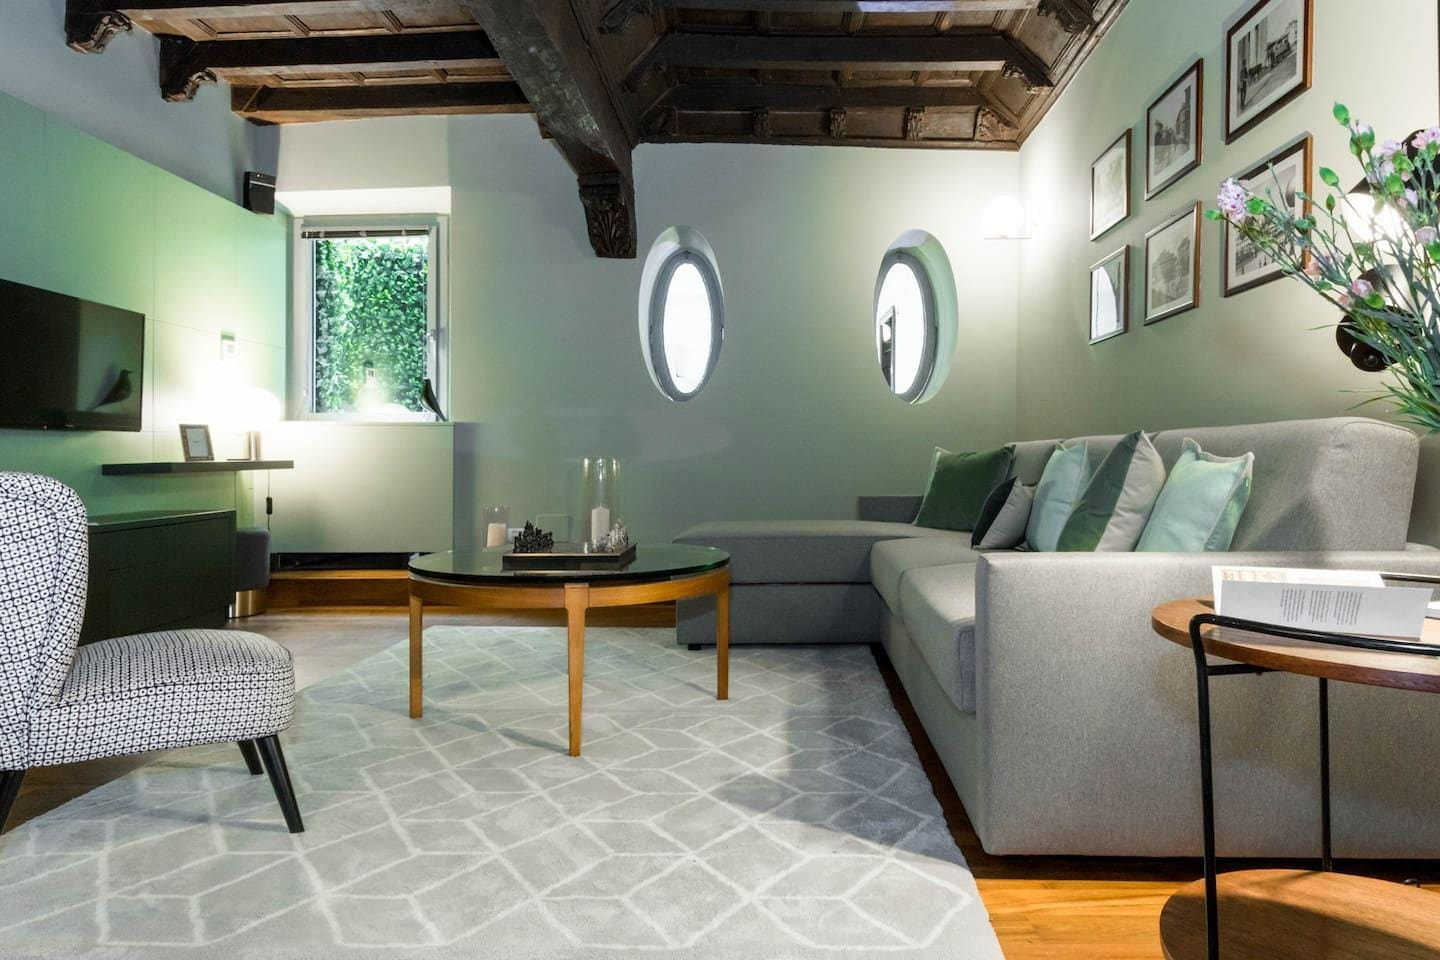 Elegant 1-bedroom in the heart of Milan